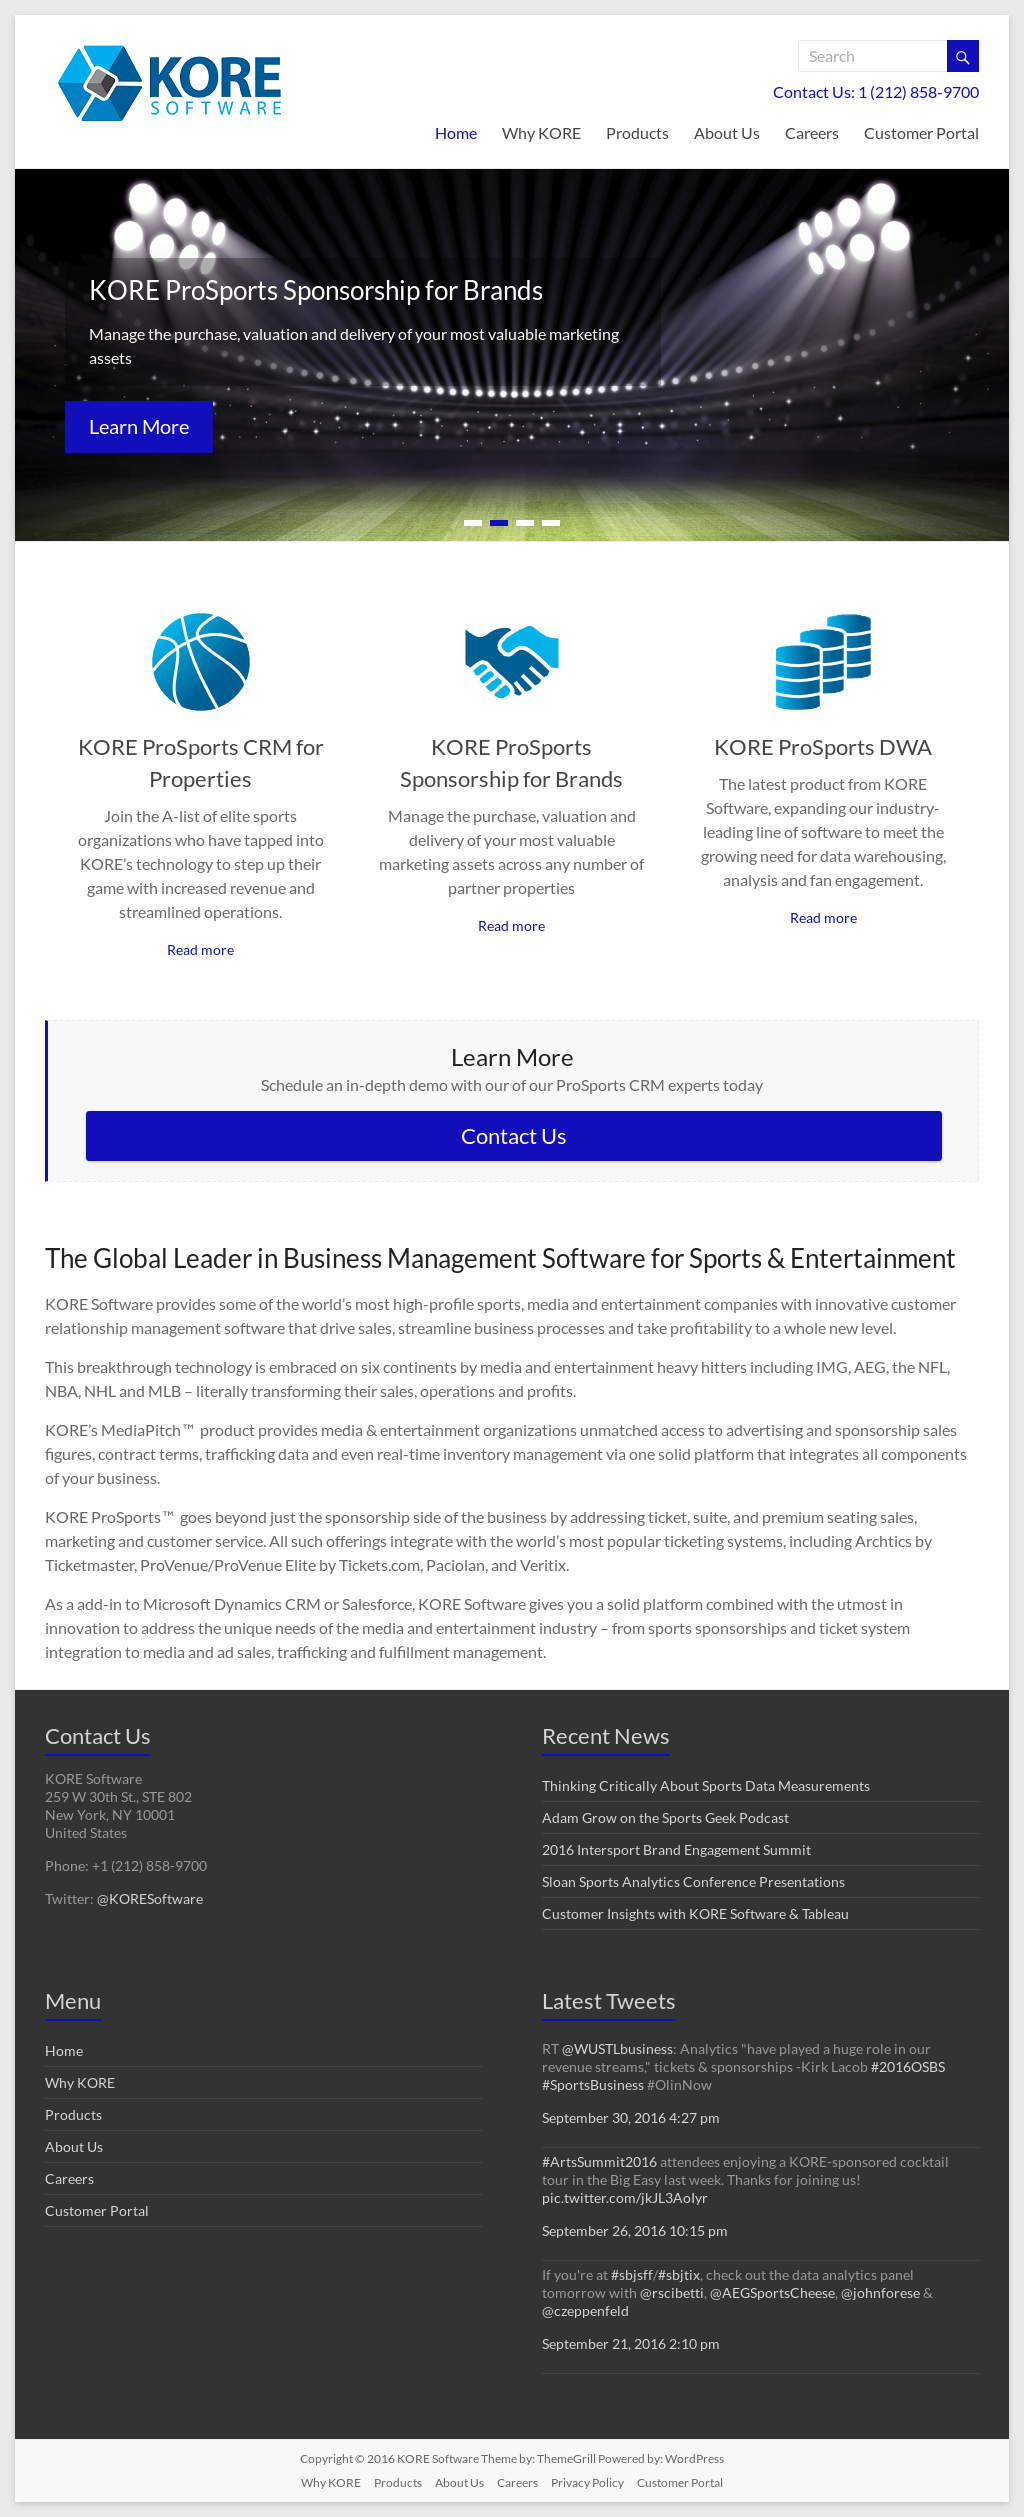 KORE Software Competitors, Revenue and Employees - Owler Company Profile